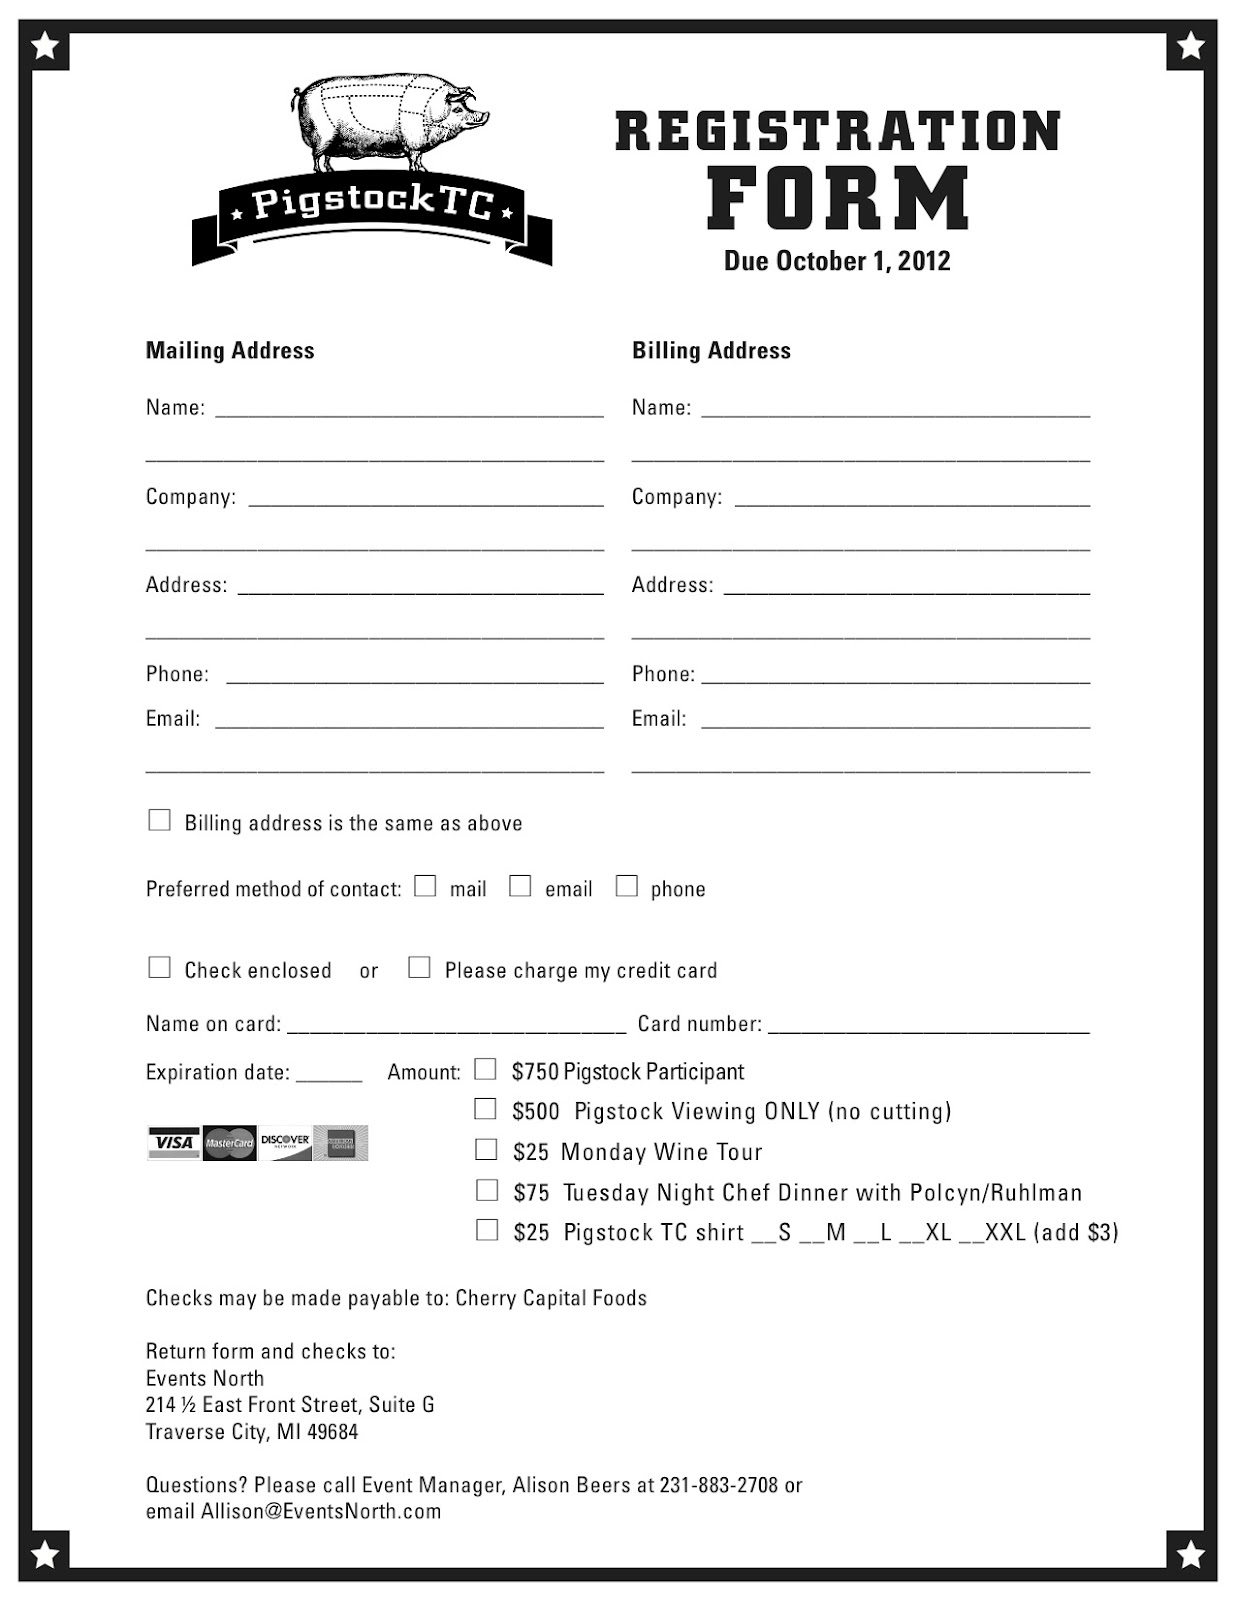 customer registration form template job application form template – Student Application Form Template